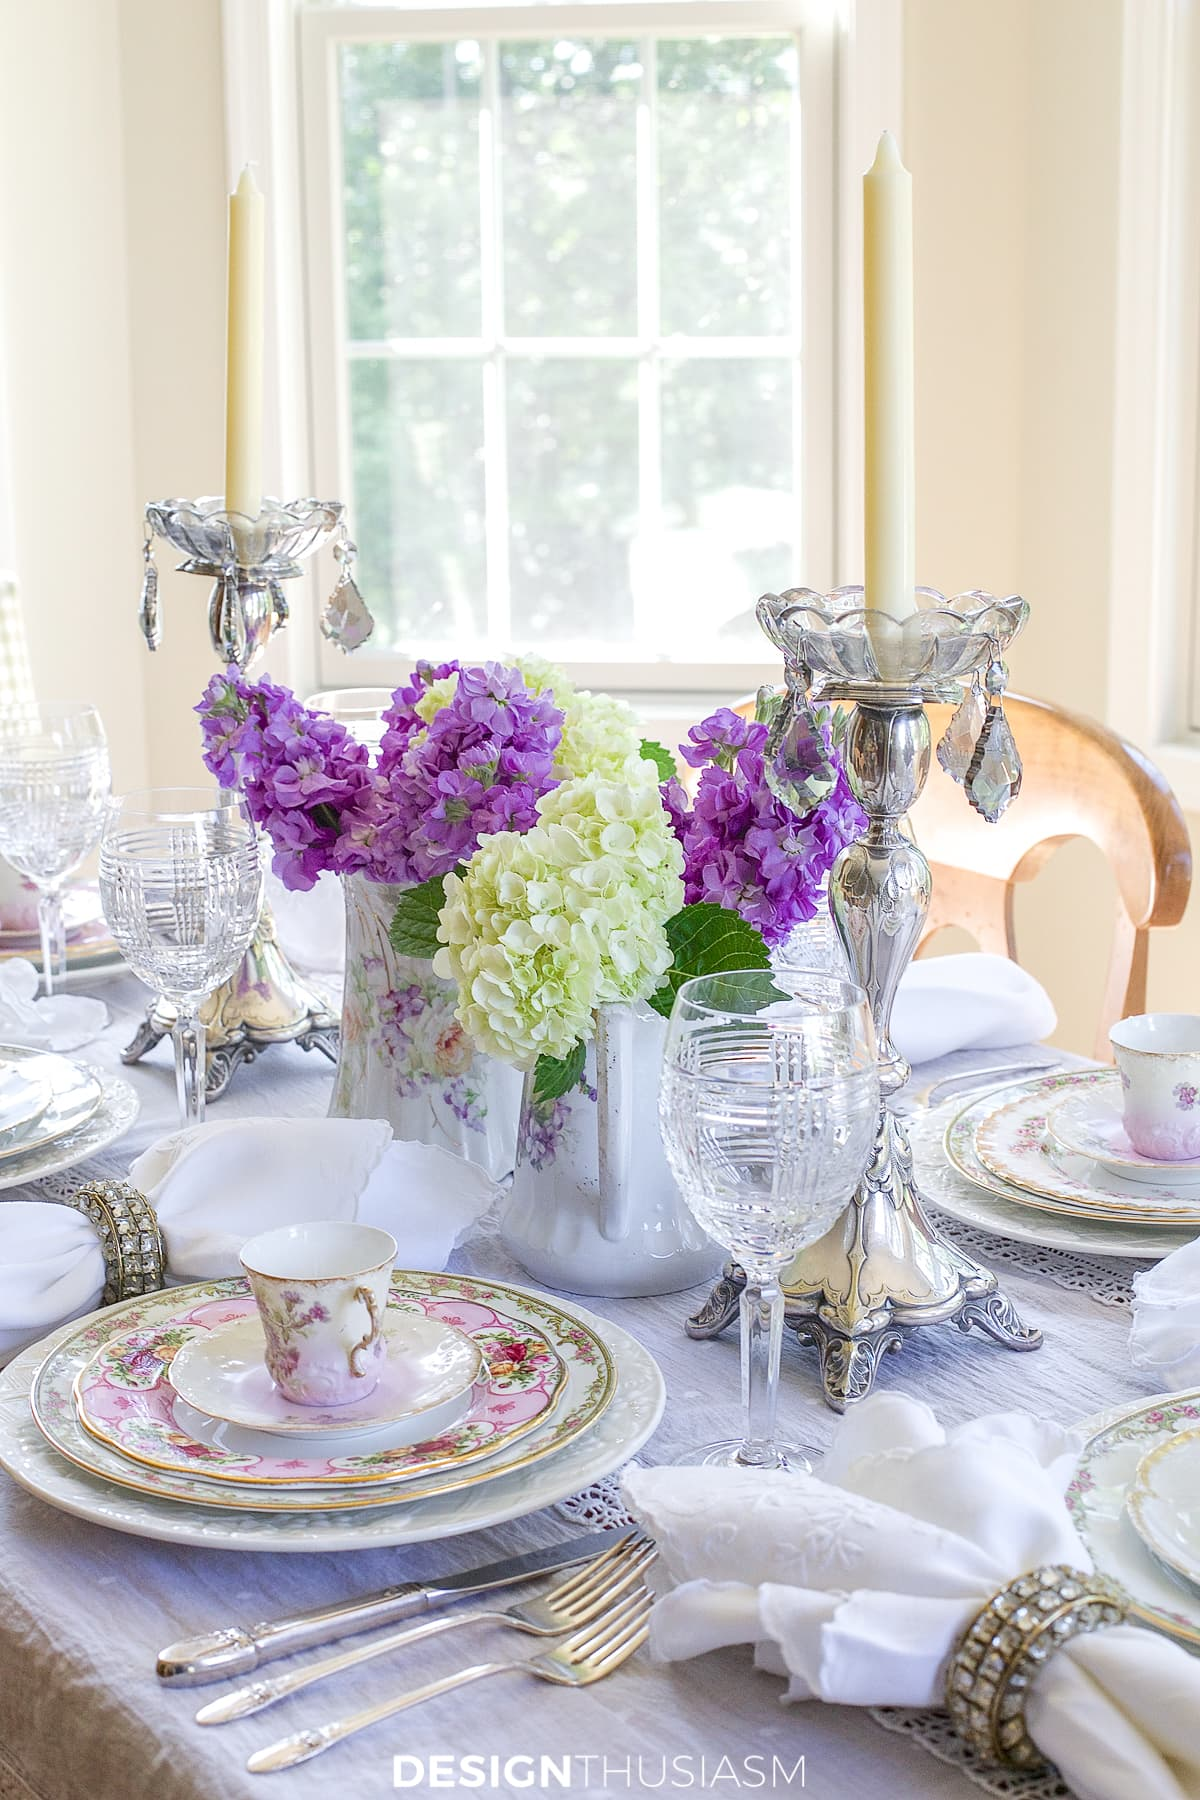 Antique Dishes How To Set A Beautiful Table With A Mix Of Vintage China